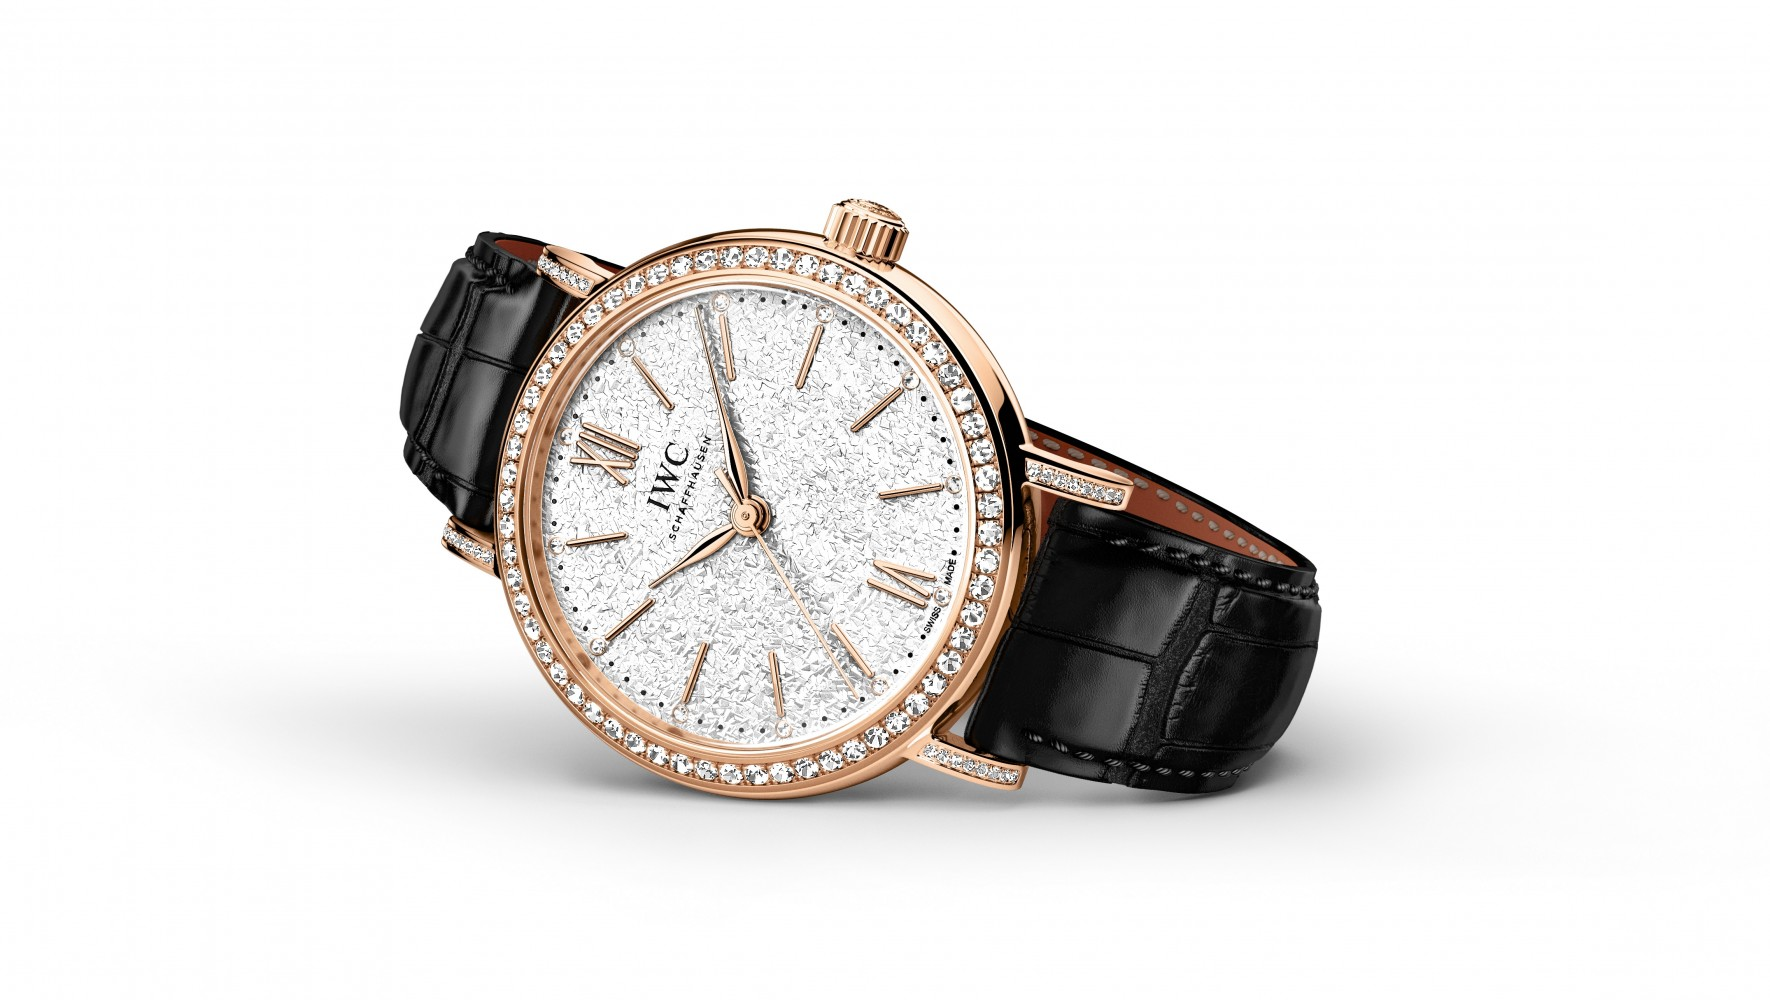 The new IWC Portofino line for women is its own class of elegance